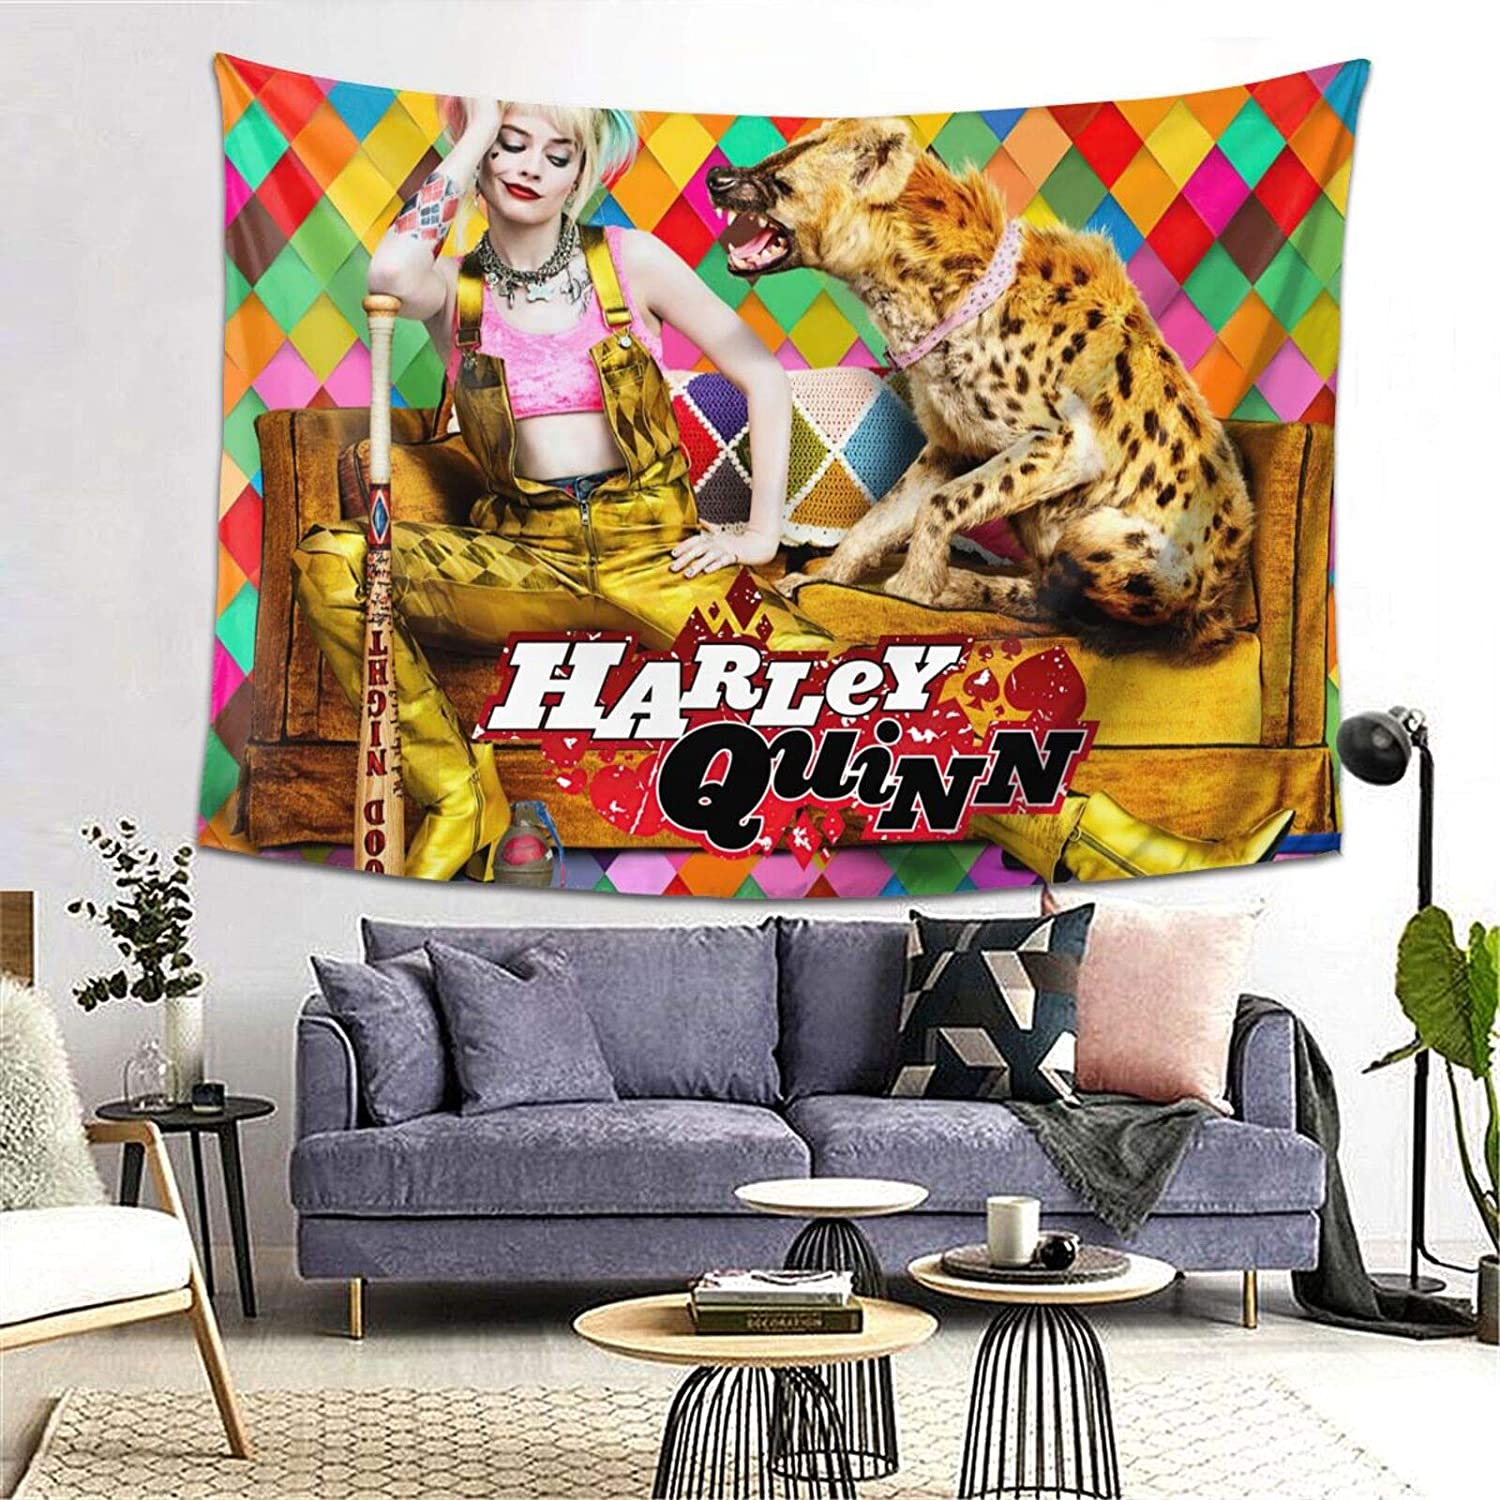 CNAOWHG Harley Fashion Q-uinn Tapestries Wall Art Hanging Tapestry Fashion Table Cloth Picnic Blanket Curtain for Bedroom Dorm Room Above Bed Queen Bed Windows Decor 80''x60''